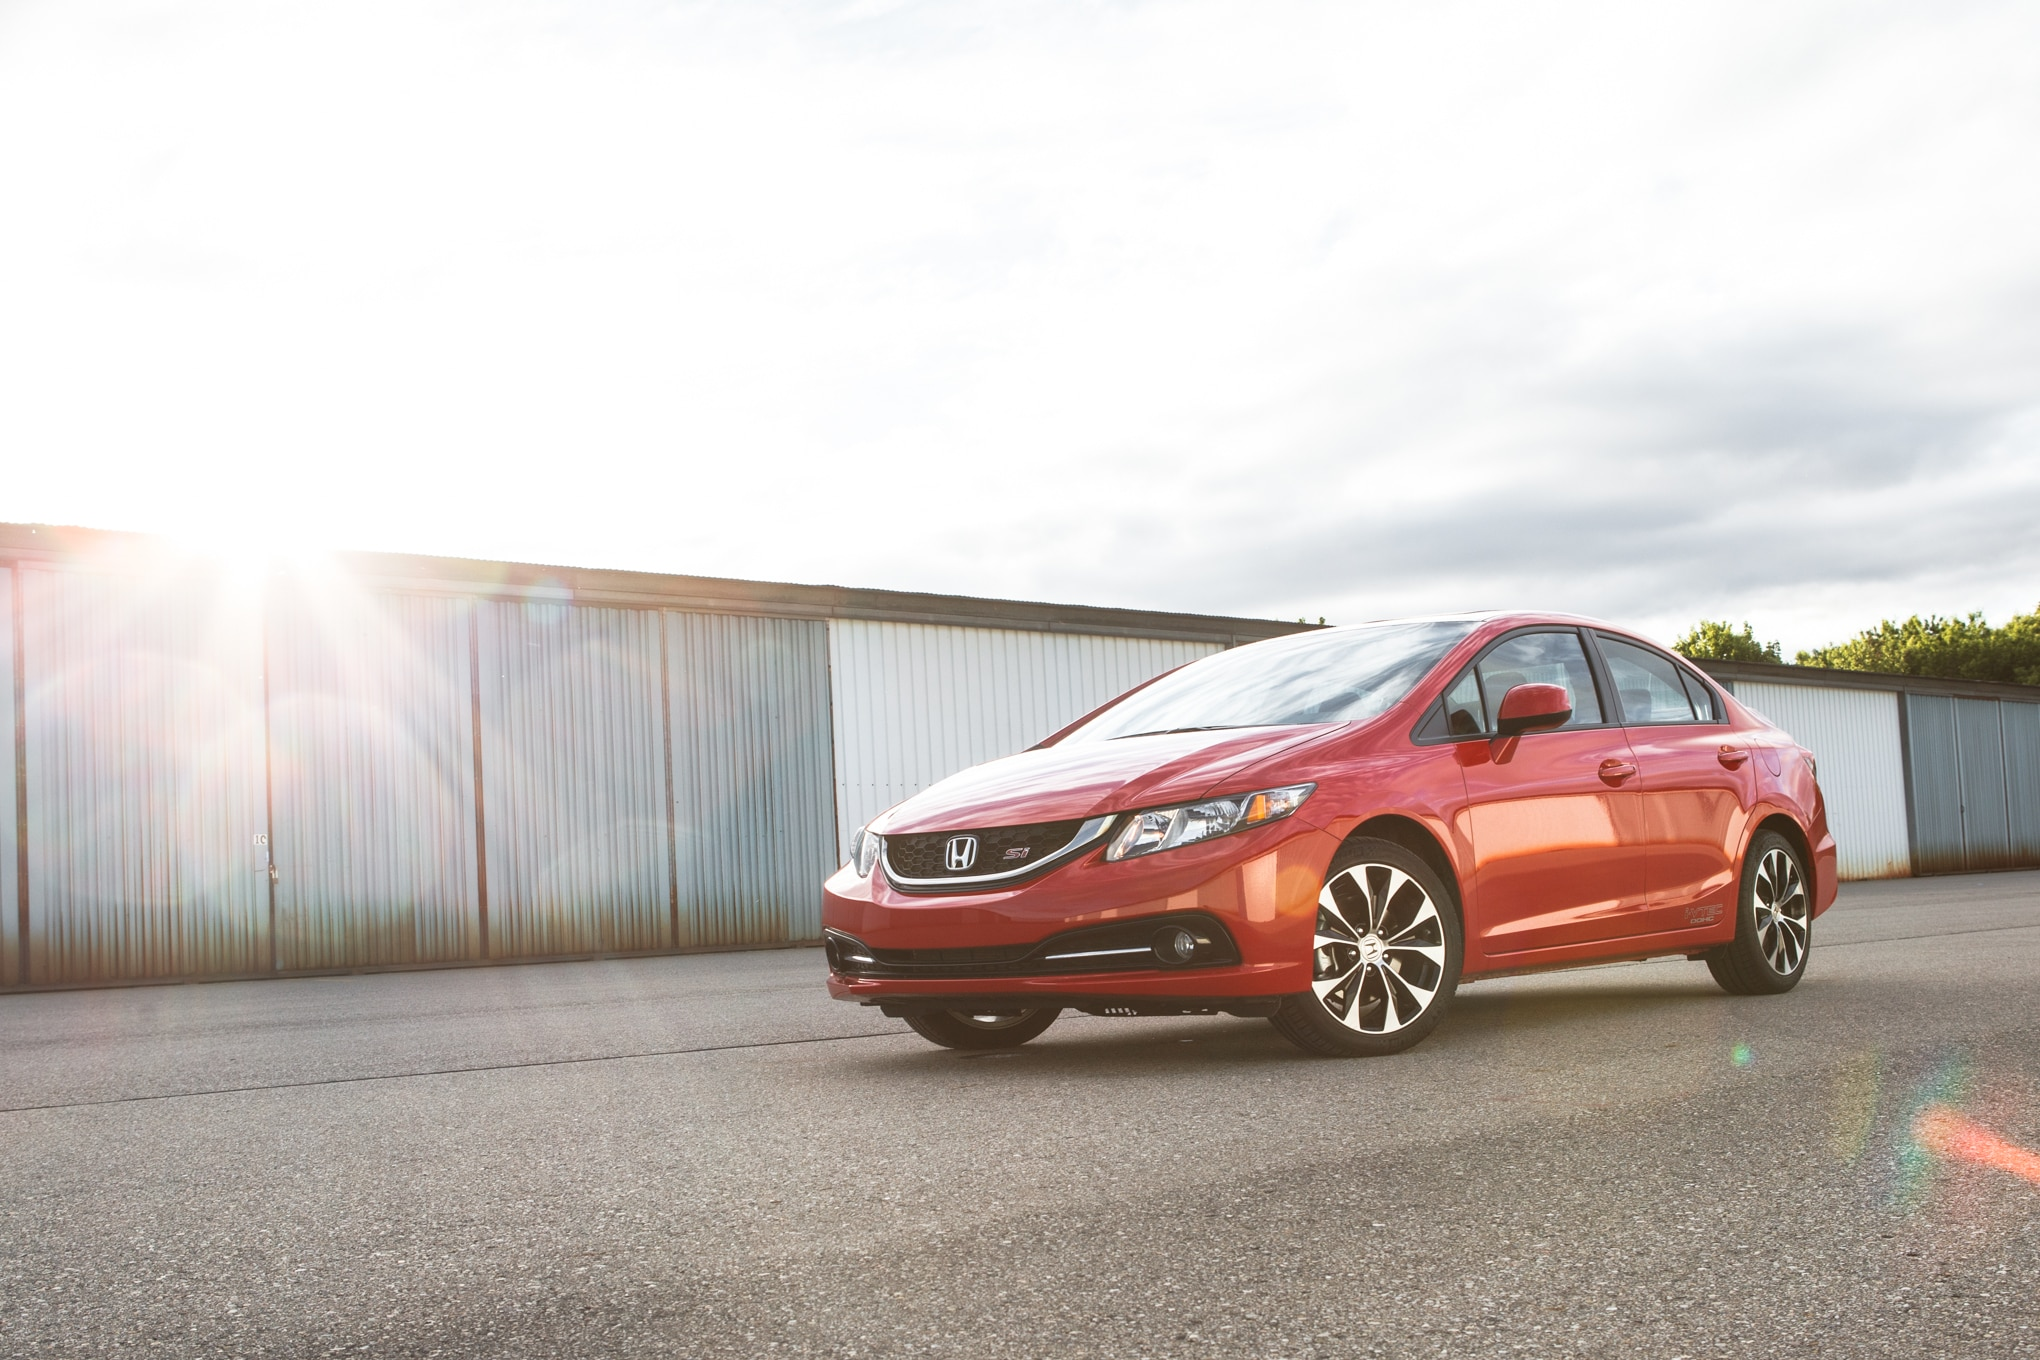 2013 Honda Civic Si Front Left View 11